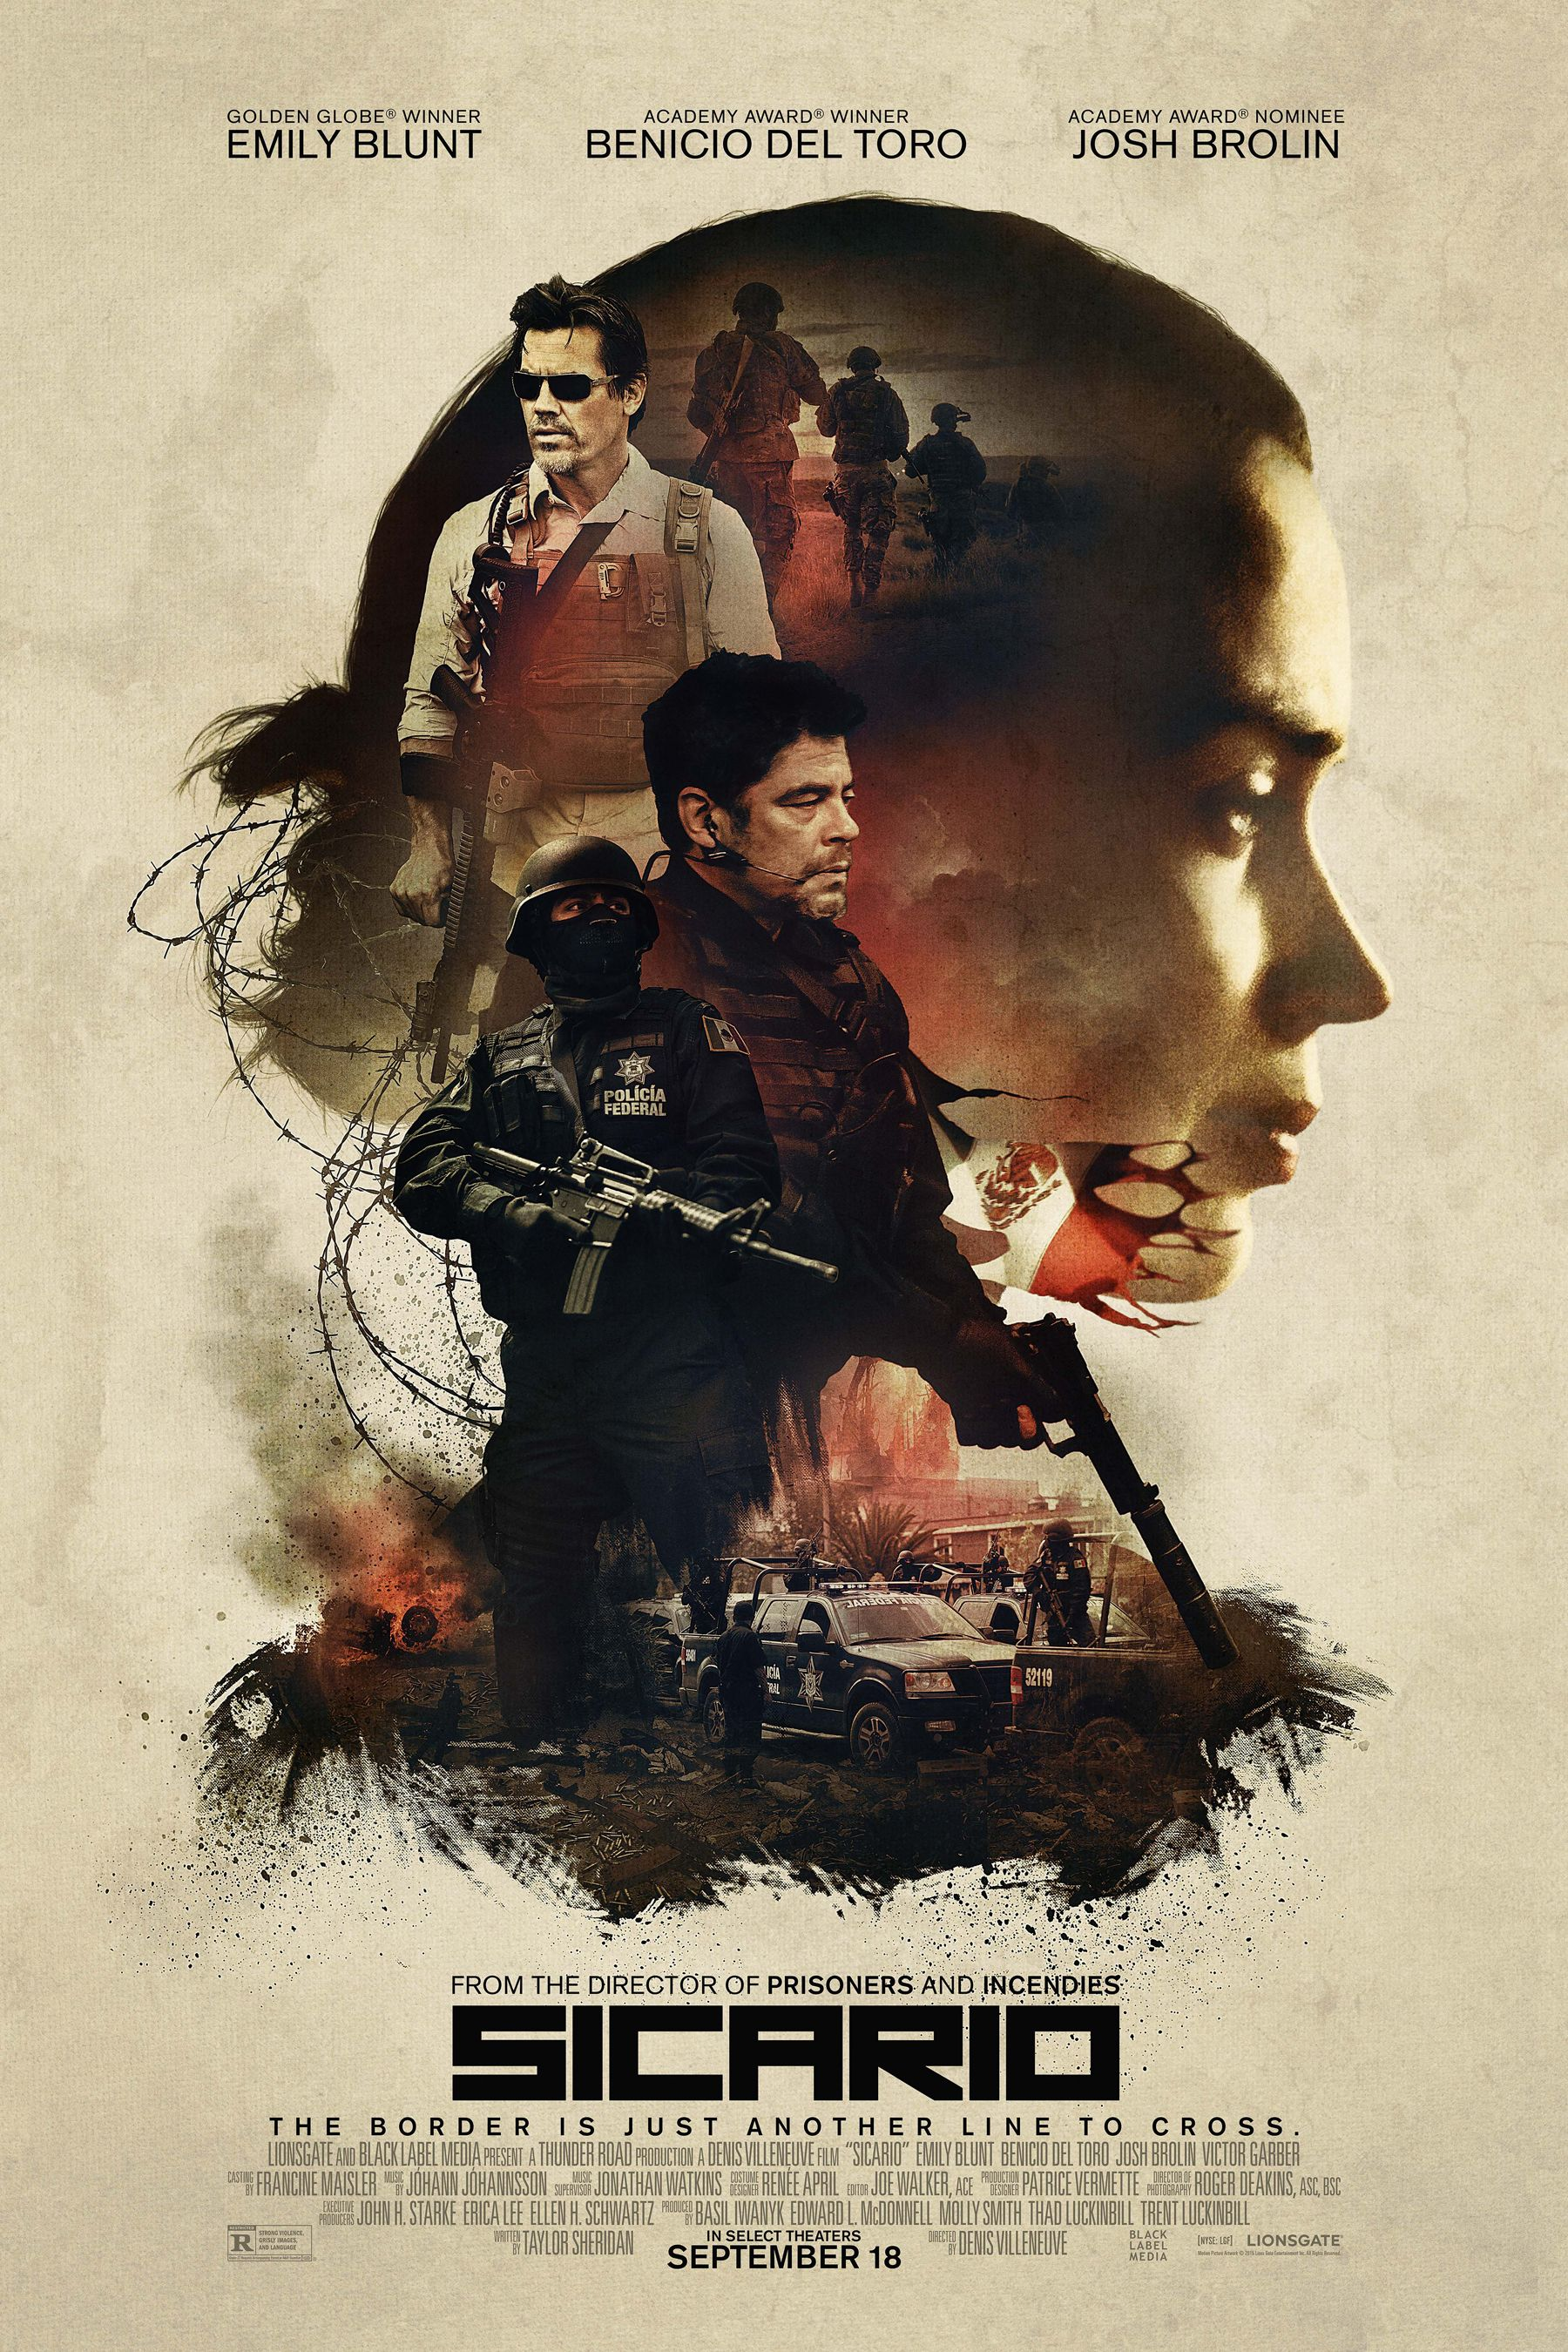 Sicario (2015) - Directed by: Denis VilleneuveStarring: Emily Blunt, Benicio Del Toro, Josh Brolin, Daniel KaluuyaRated: R for strong violence, grisly images, and languageRunning Time: 2 h 1 mTMM Score: 5 stars out of 5STRENGTHS: writing, directing, acting, cinematography, soundtrack, pacingWEAKNESSES: -